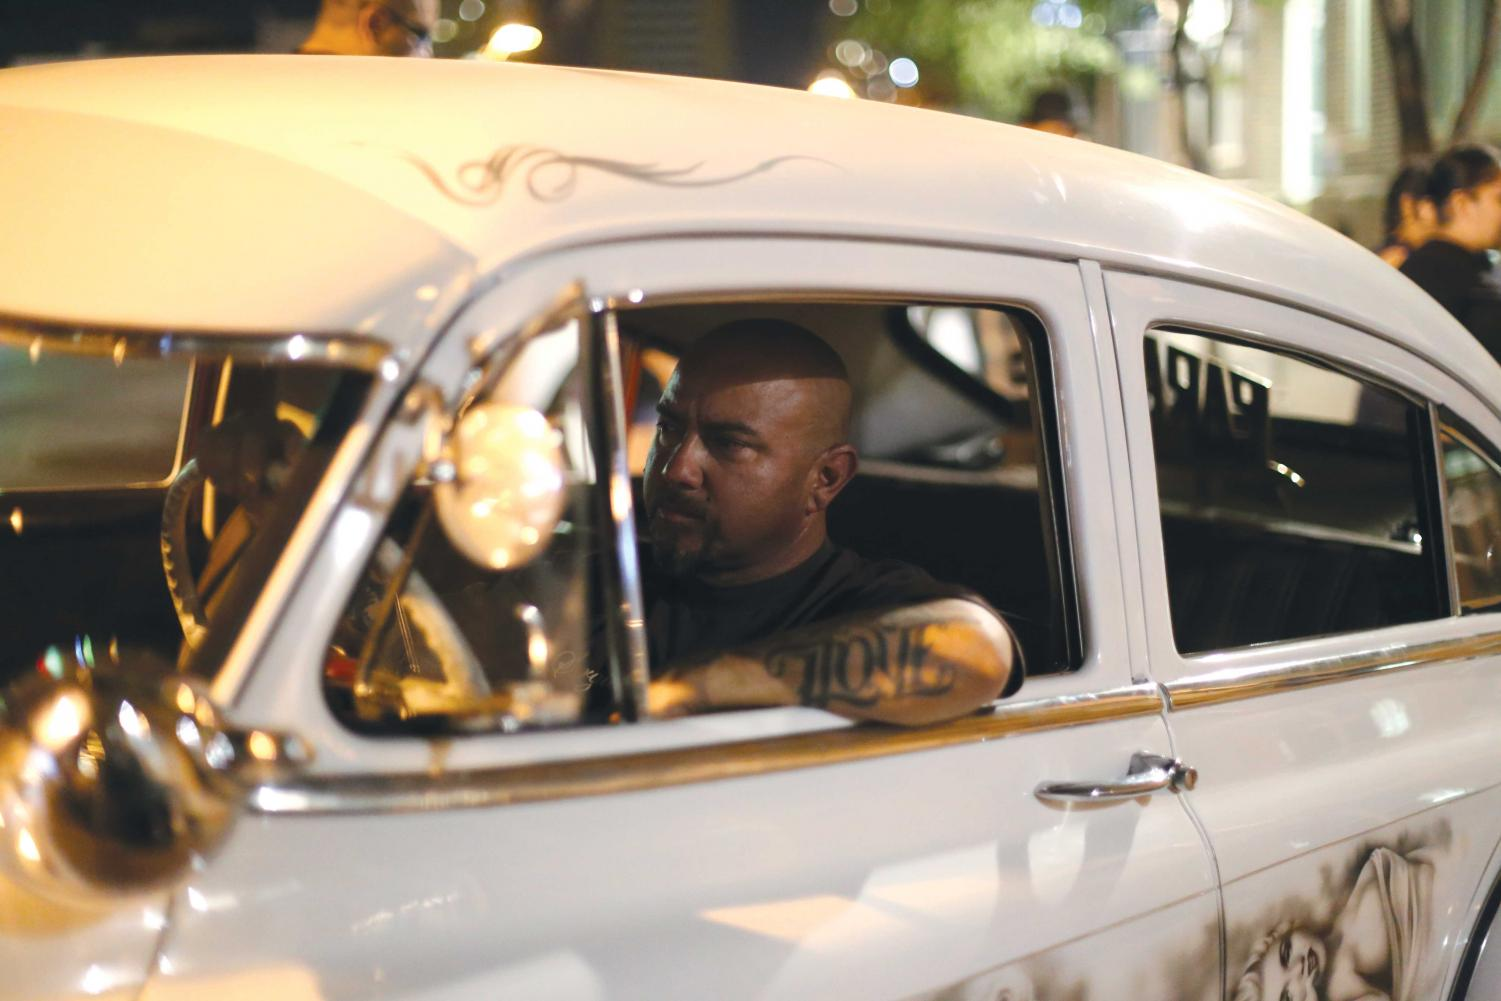 Paradise CarClub president Sergio Cabral drives his Marilyn Monroe fleet line at Heritage Cruise Nights every Sunday.